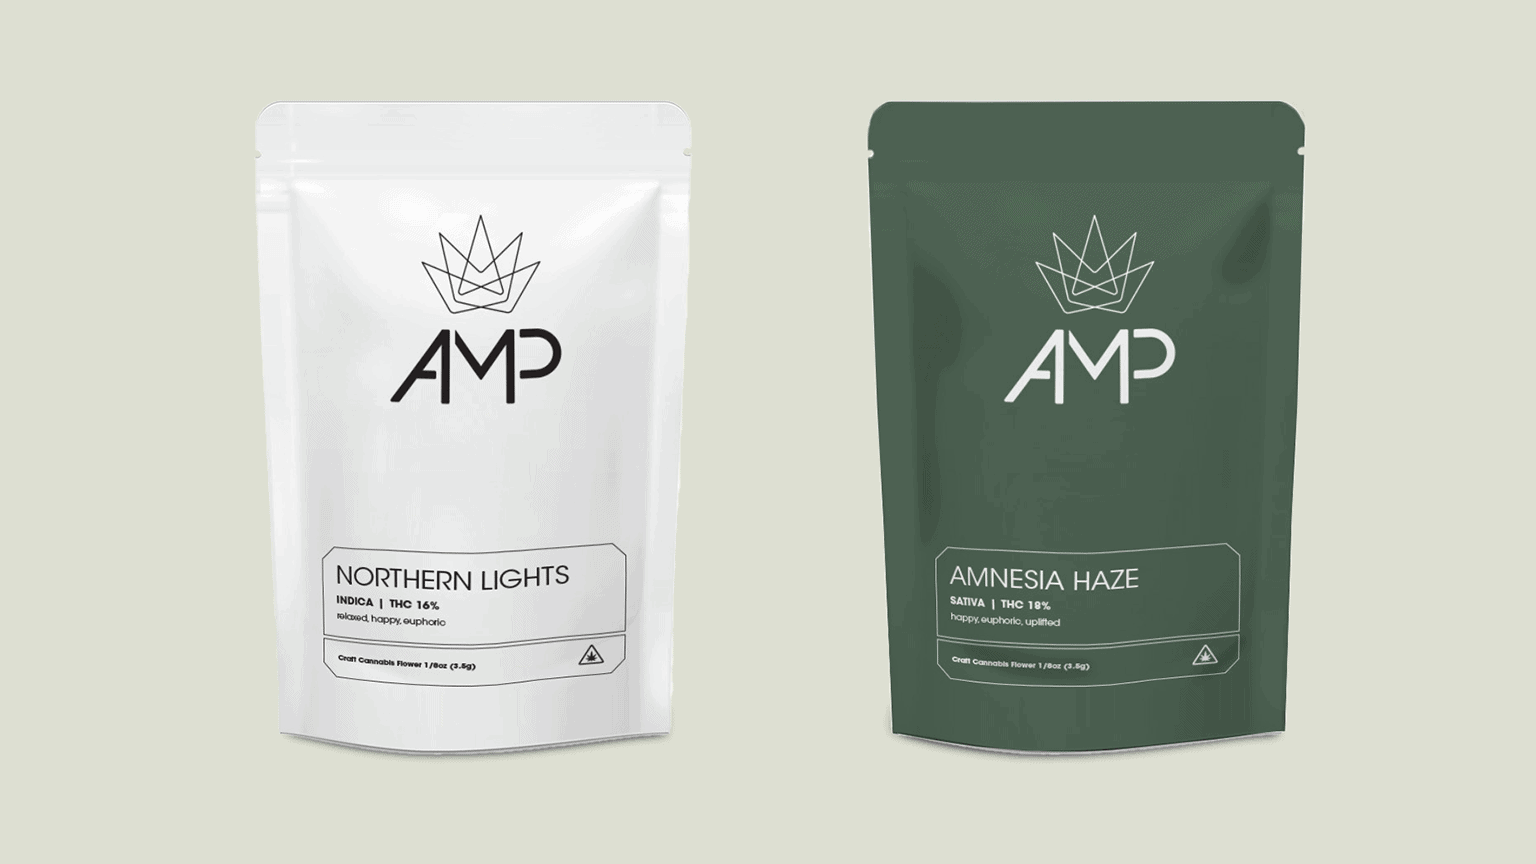 AMP Green and White Cannabis Gusset Pouch Packaging